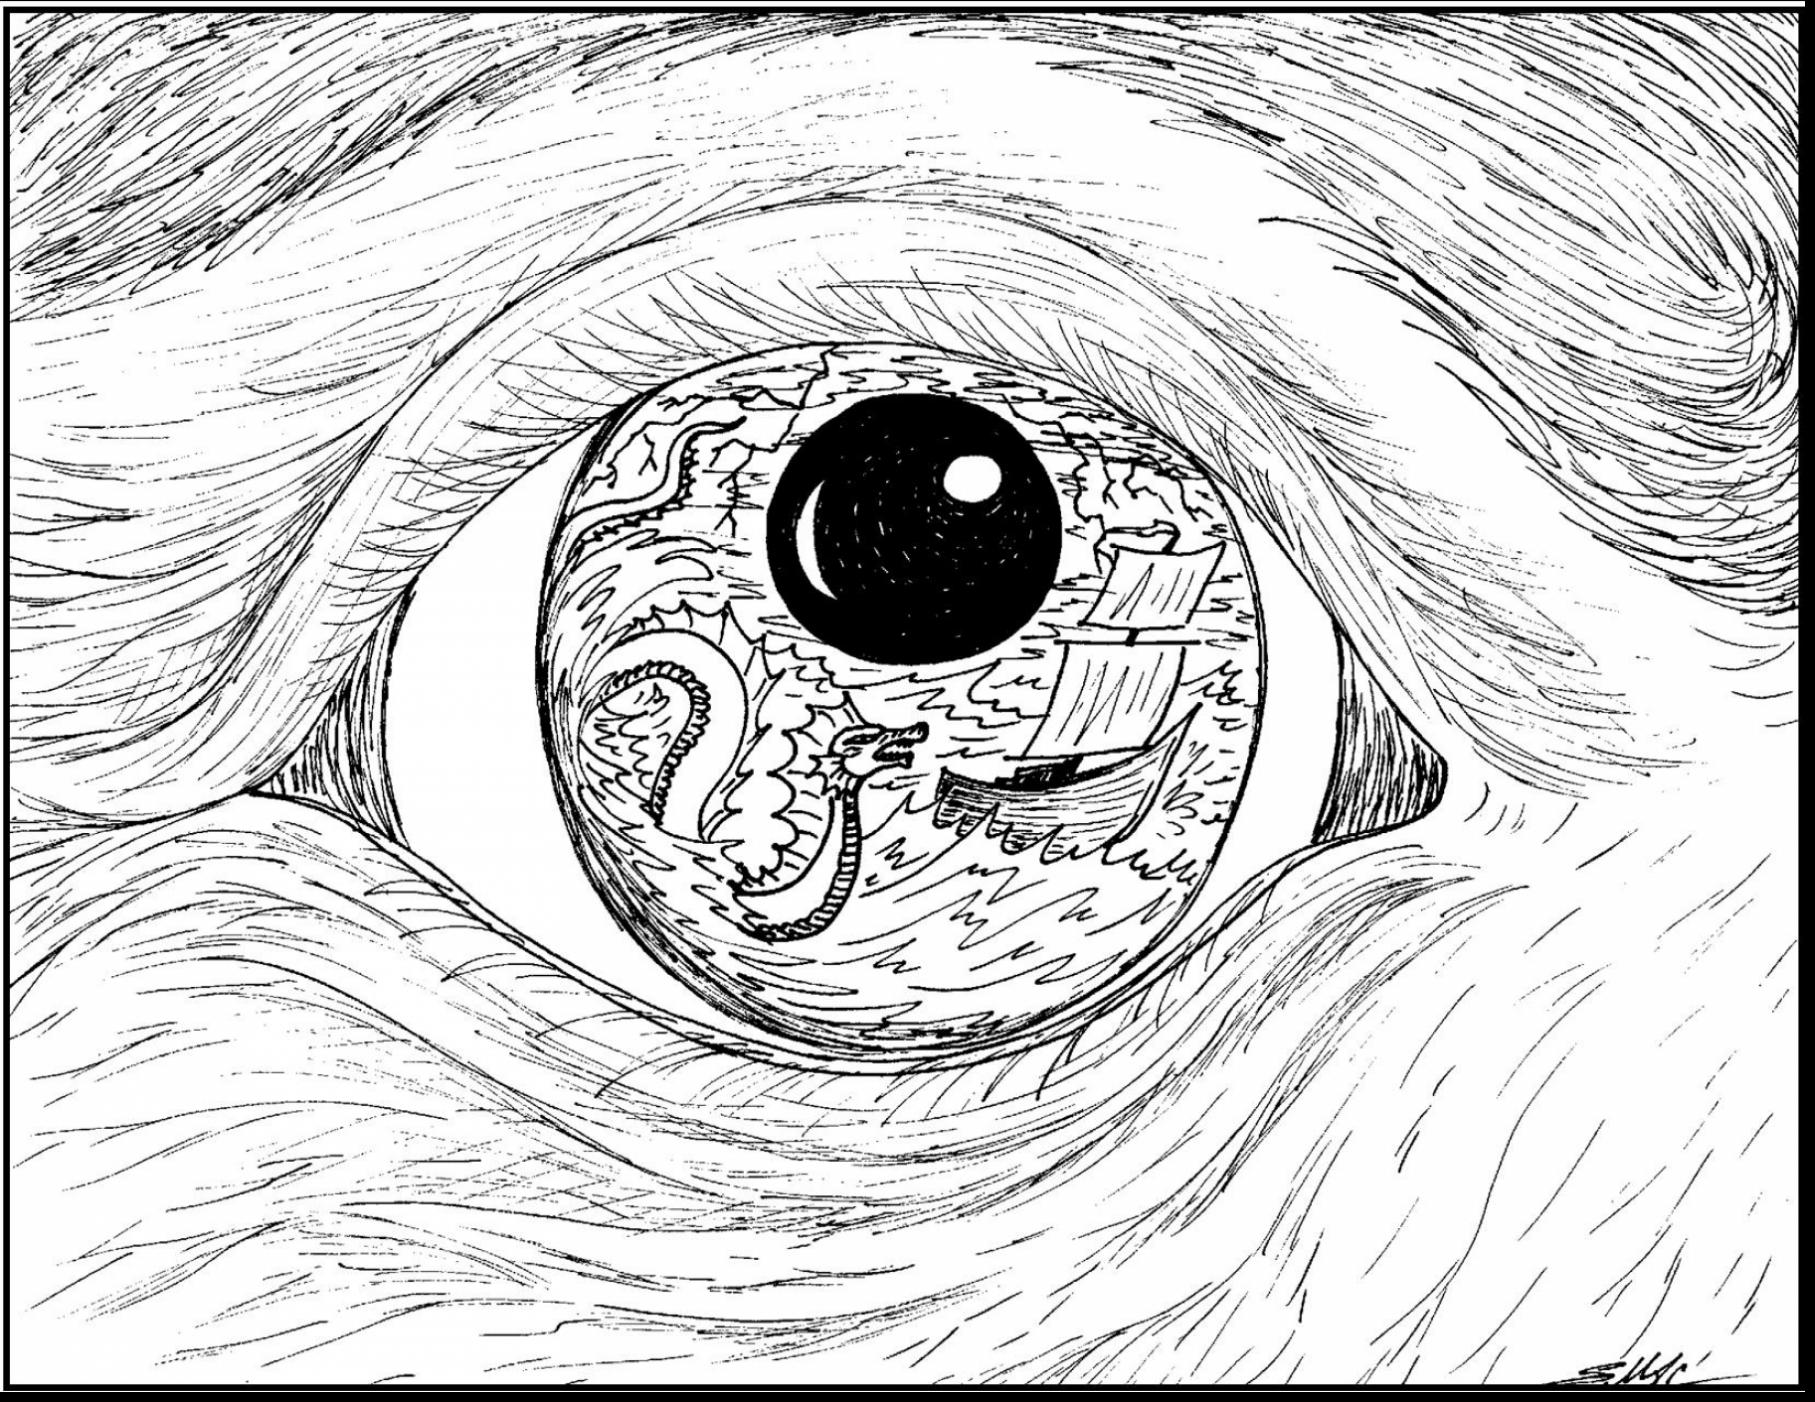 coloring images of eyes eye coloring page free download on clipartmag images of eyes coloring